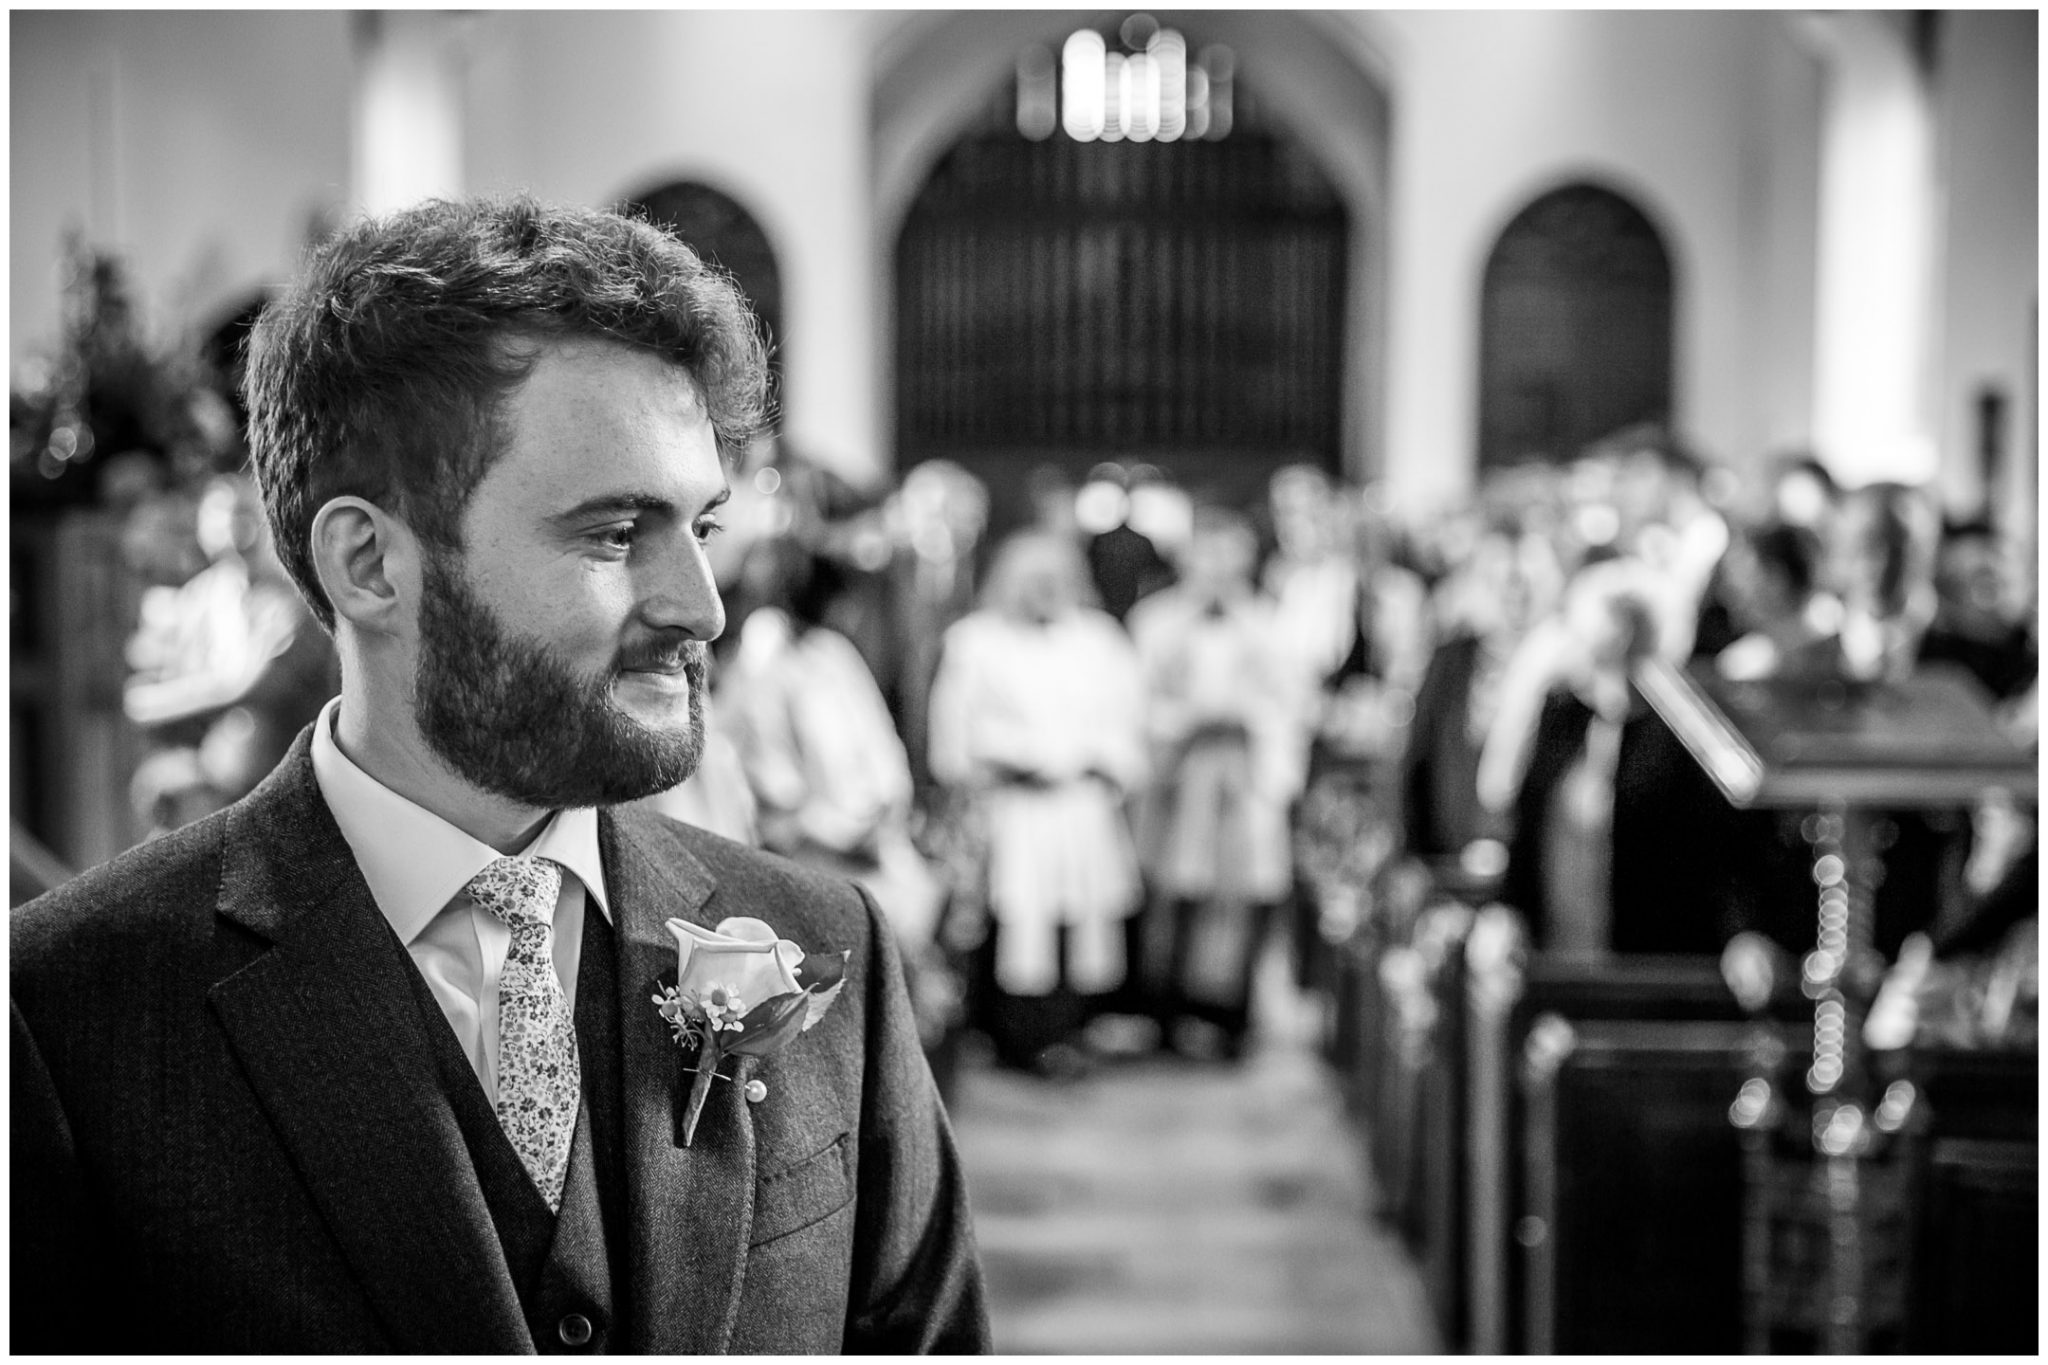 The groom anticipates the arrival of his bride as she walks down the aisle